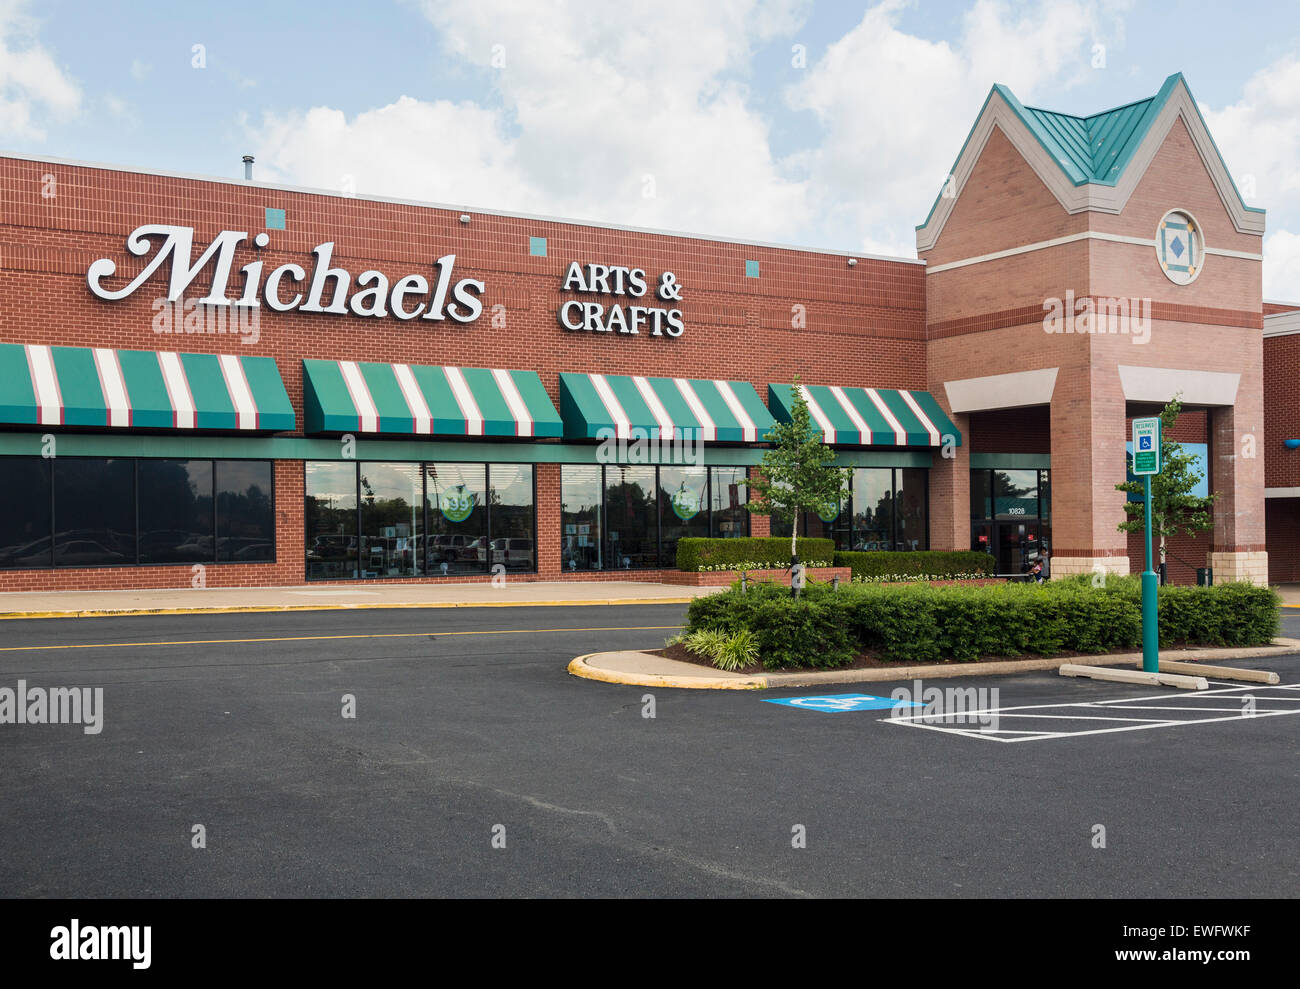 Entrance to large Michaels arts and crafts store in Manassas, Virginia, USA - Stock Image